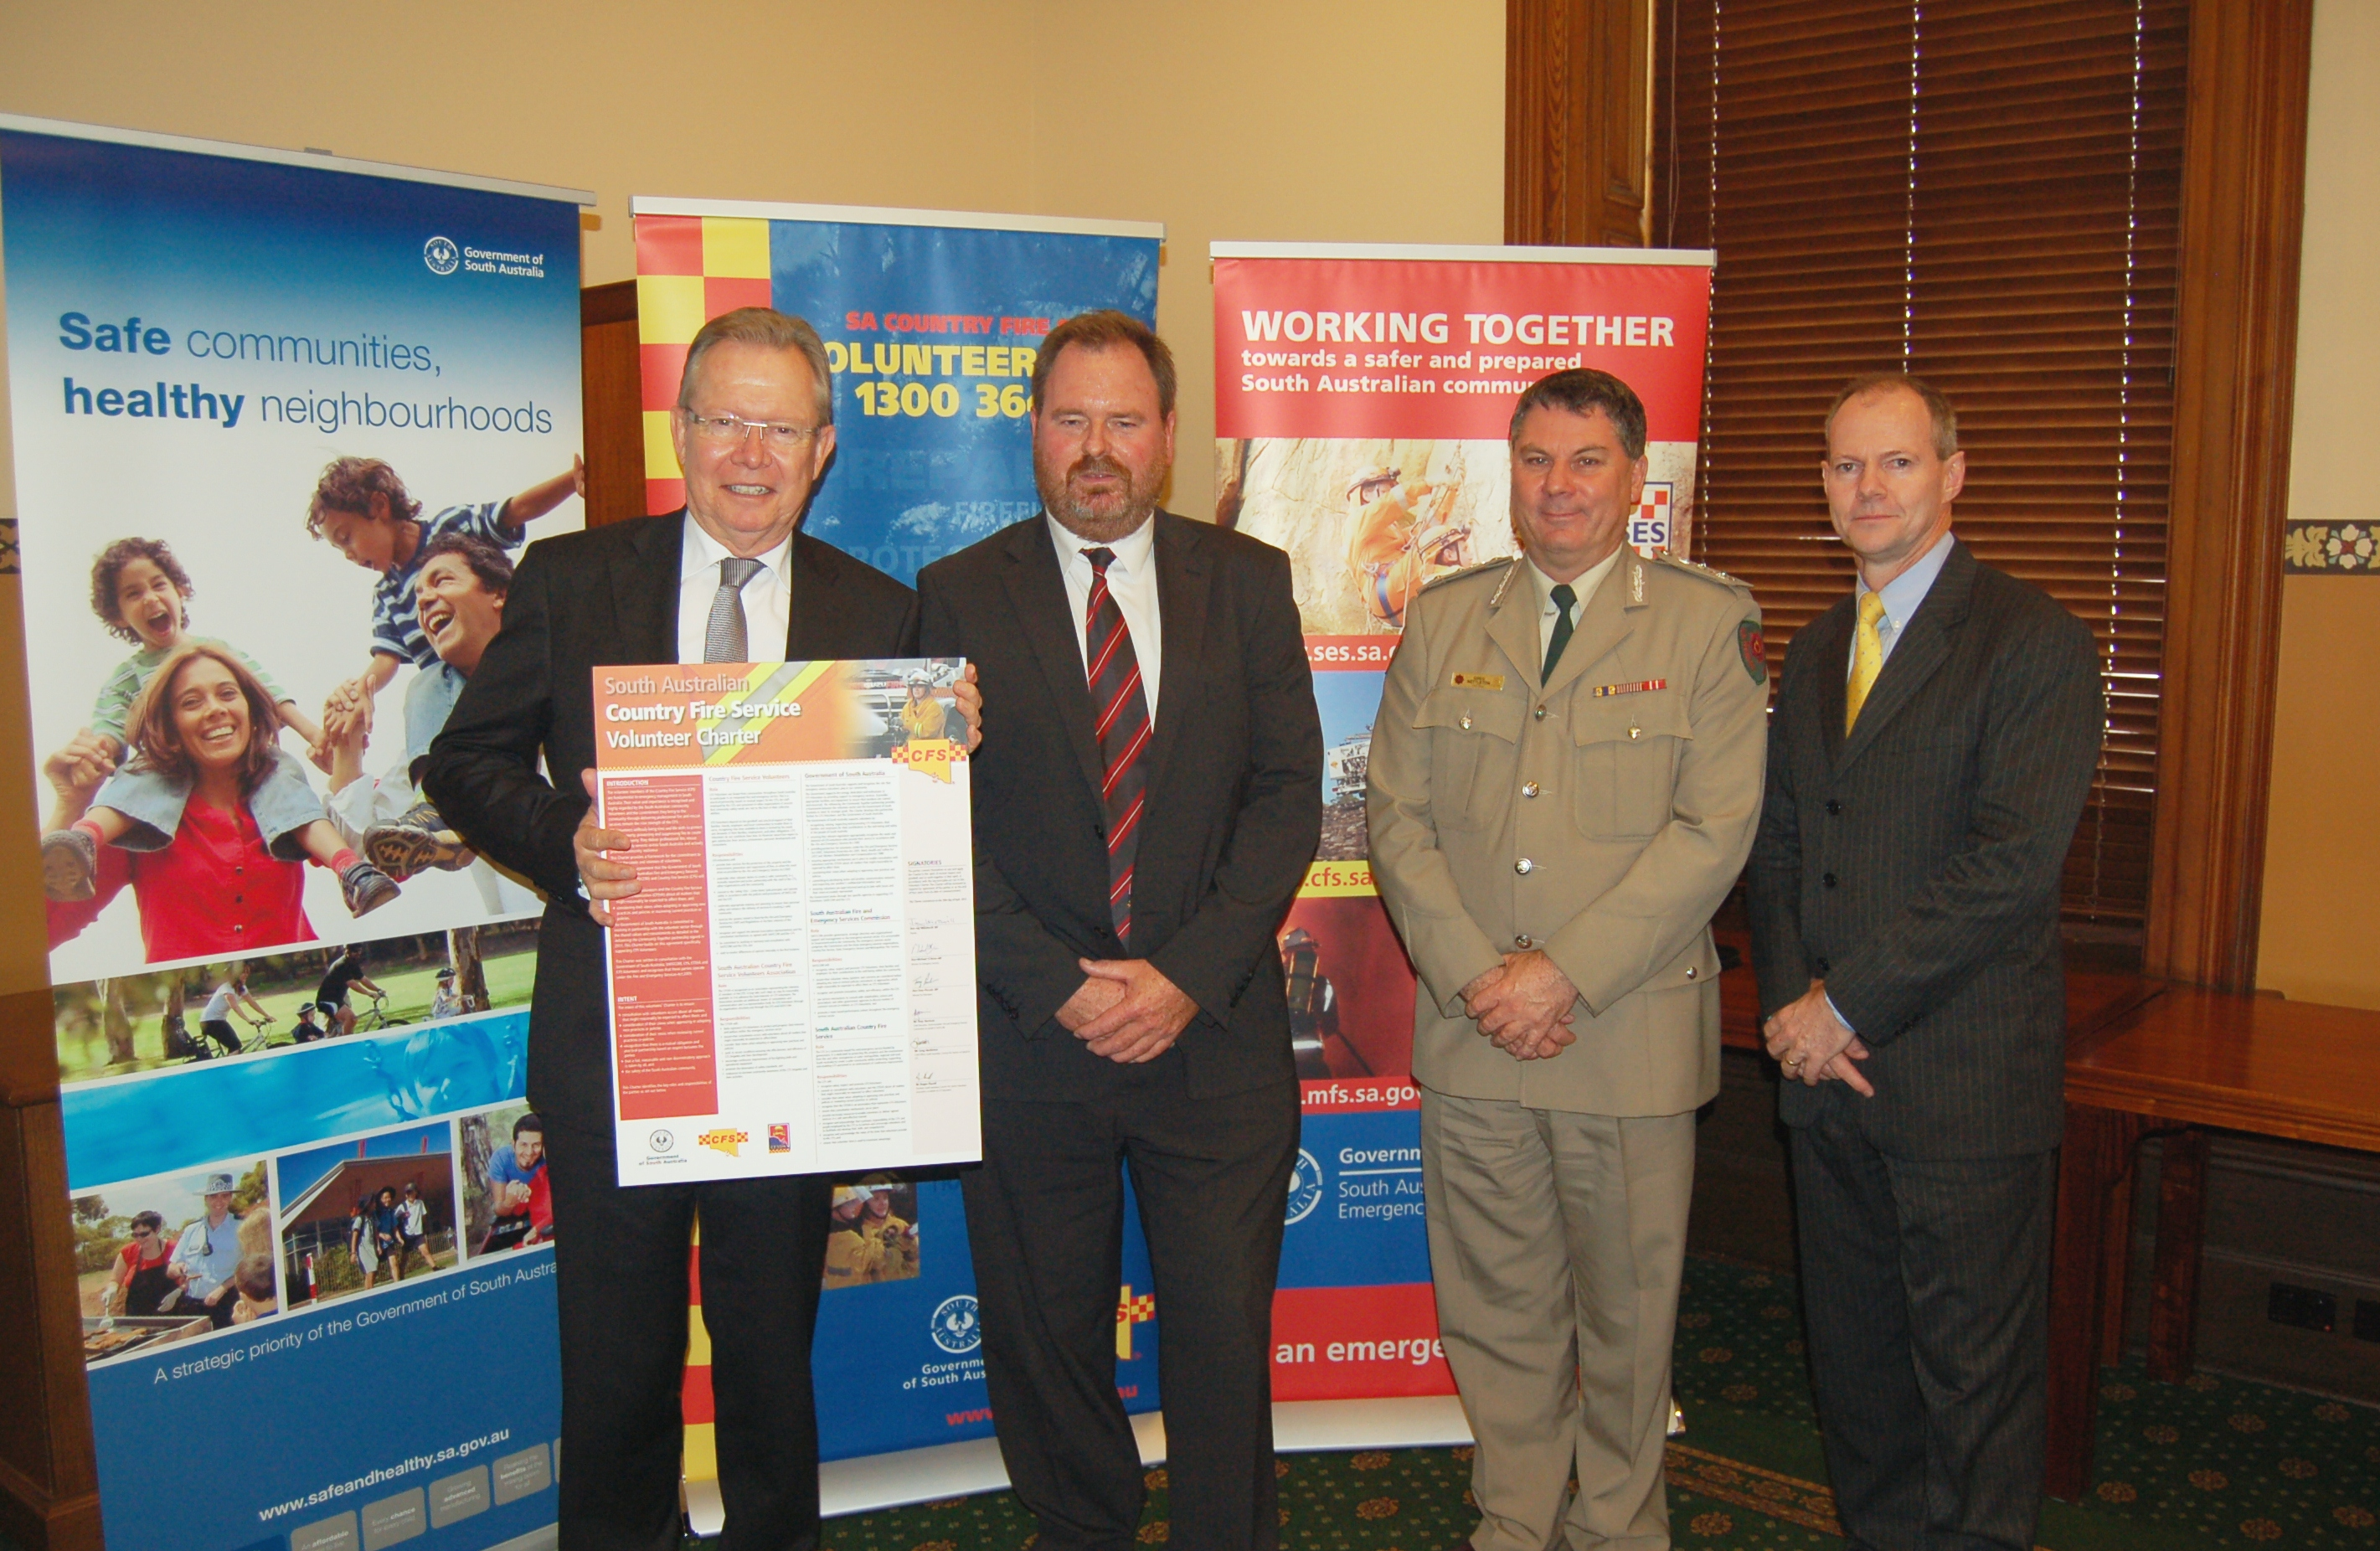 Launch of CFS Volunteer Charter 2013